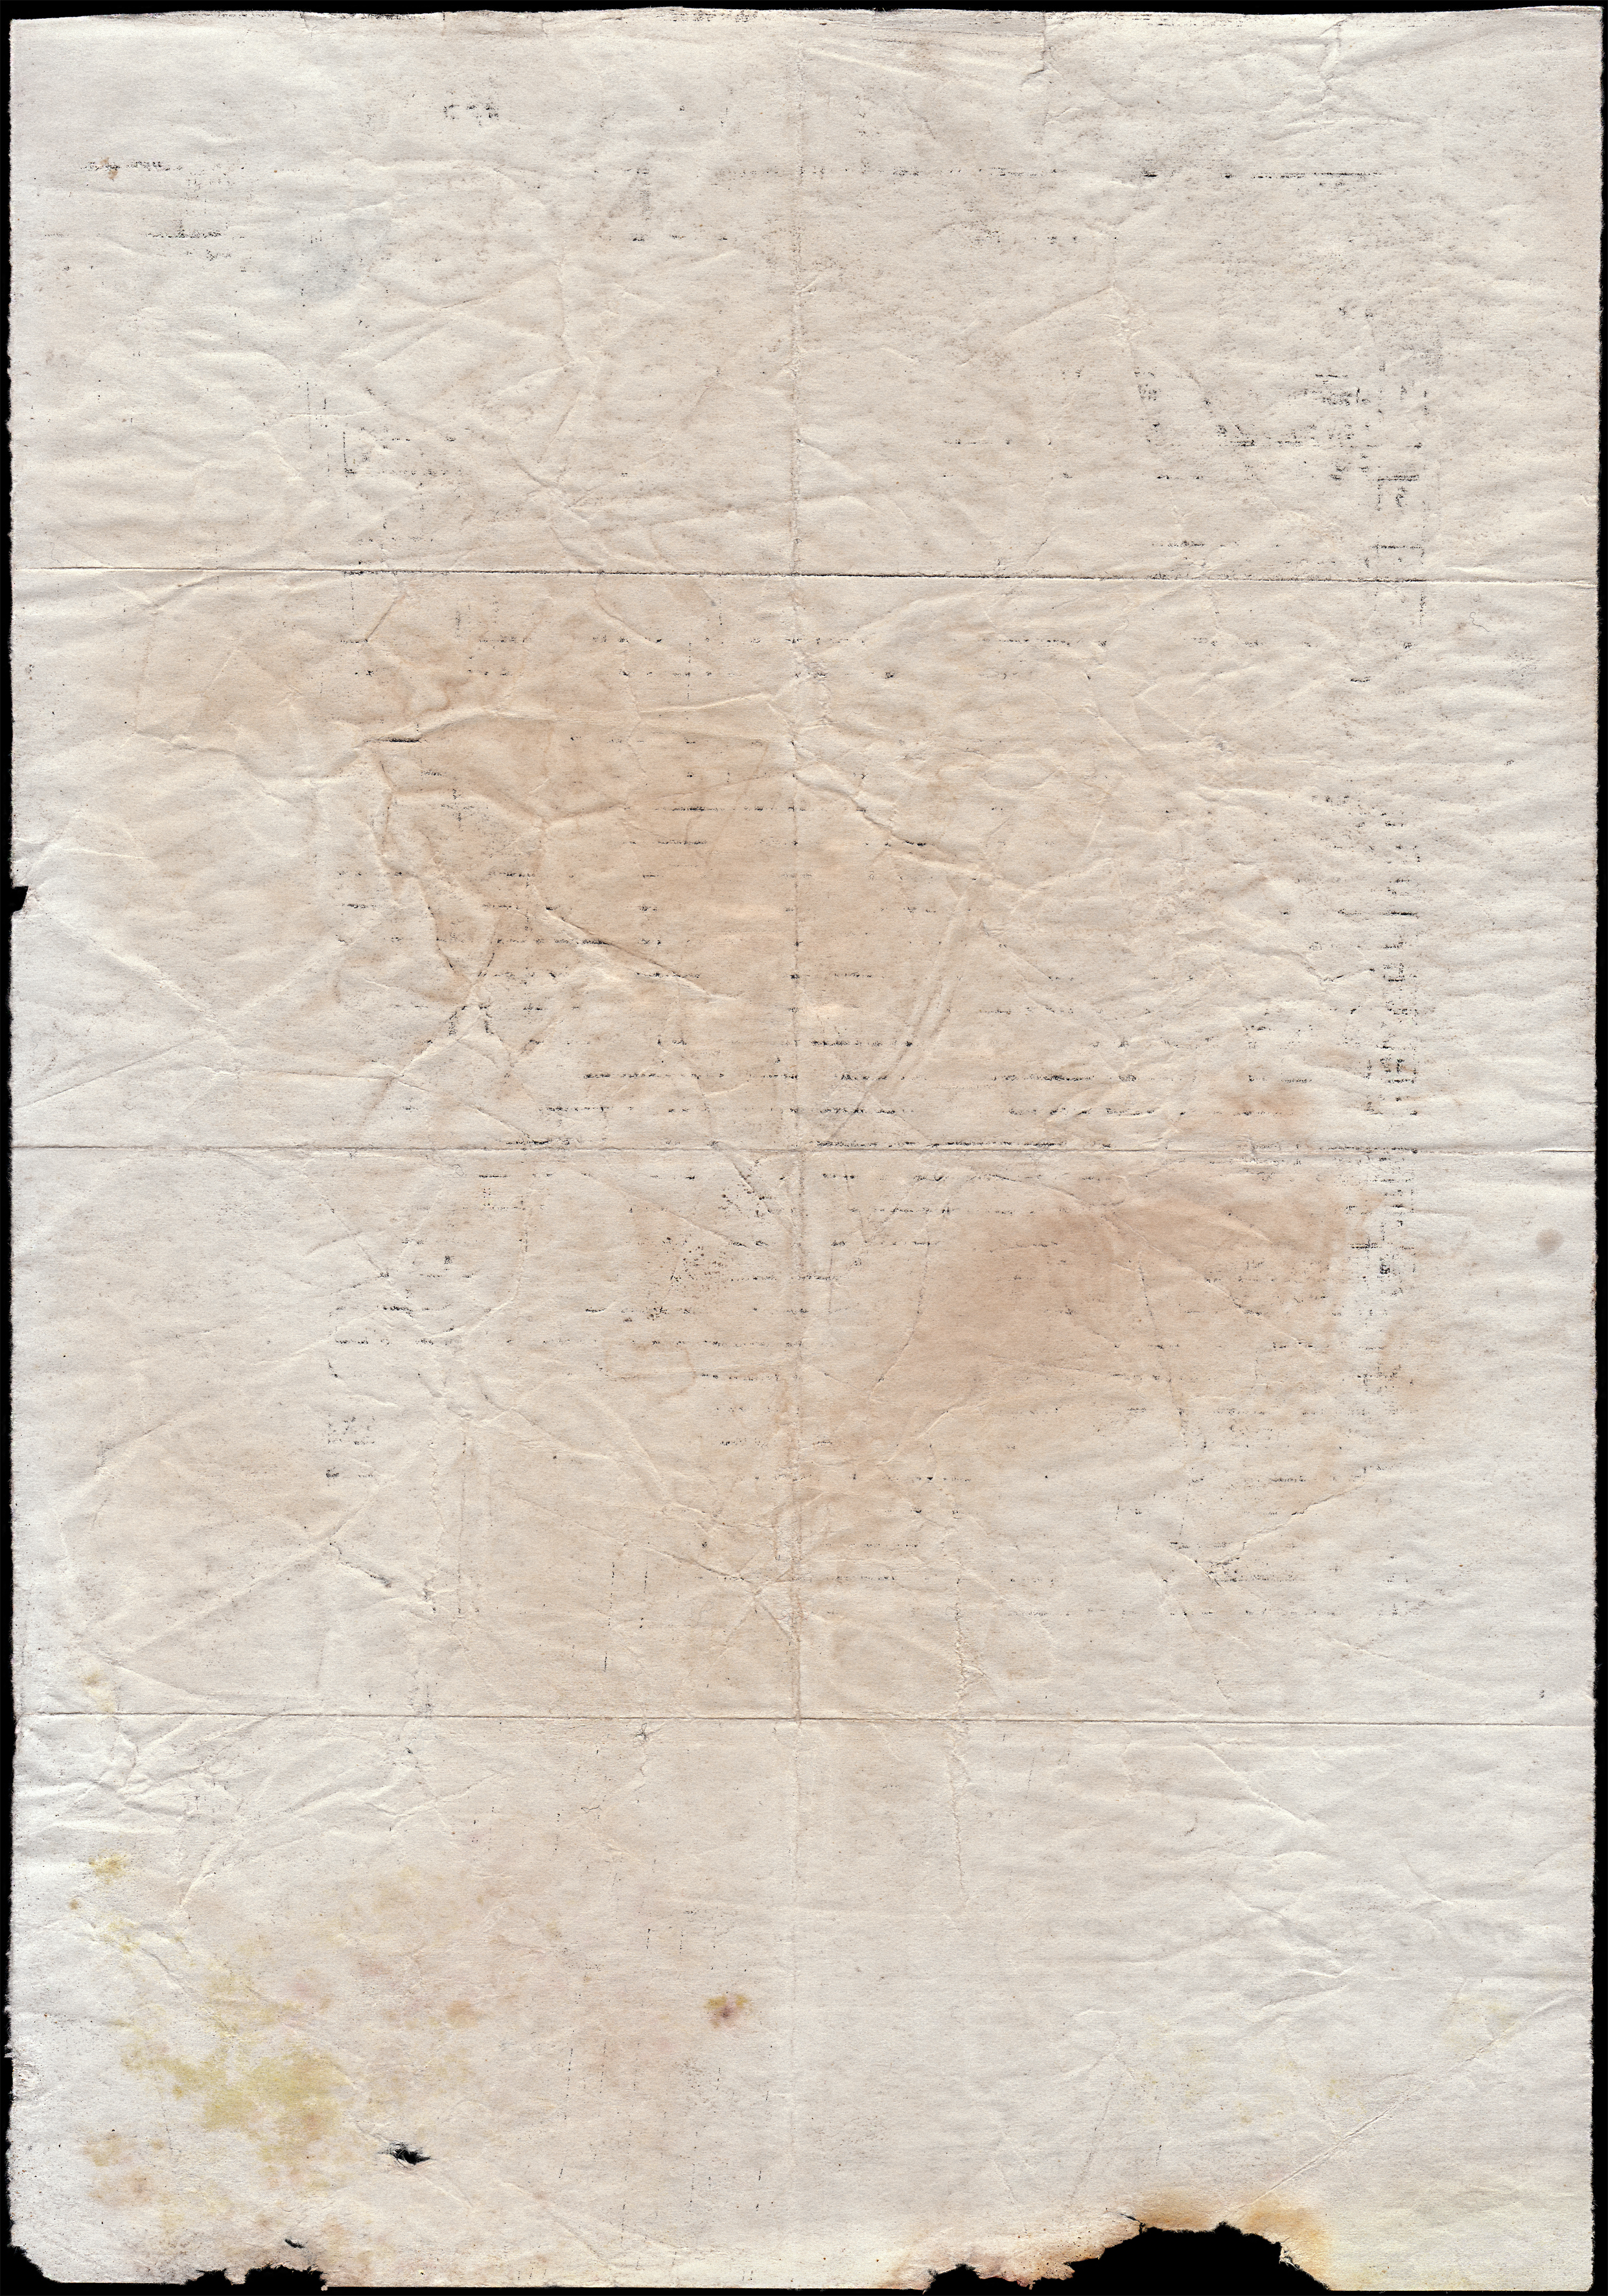 Grungy paper texture v.18 by bashcorpo